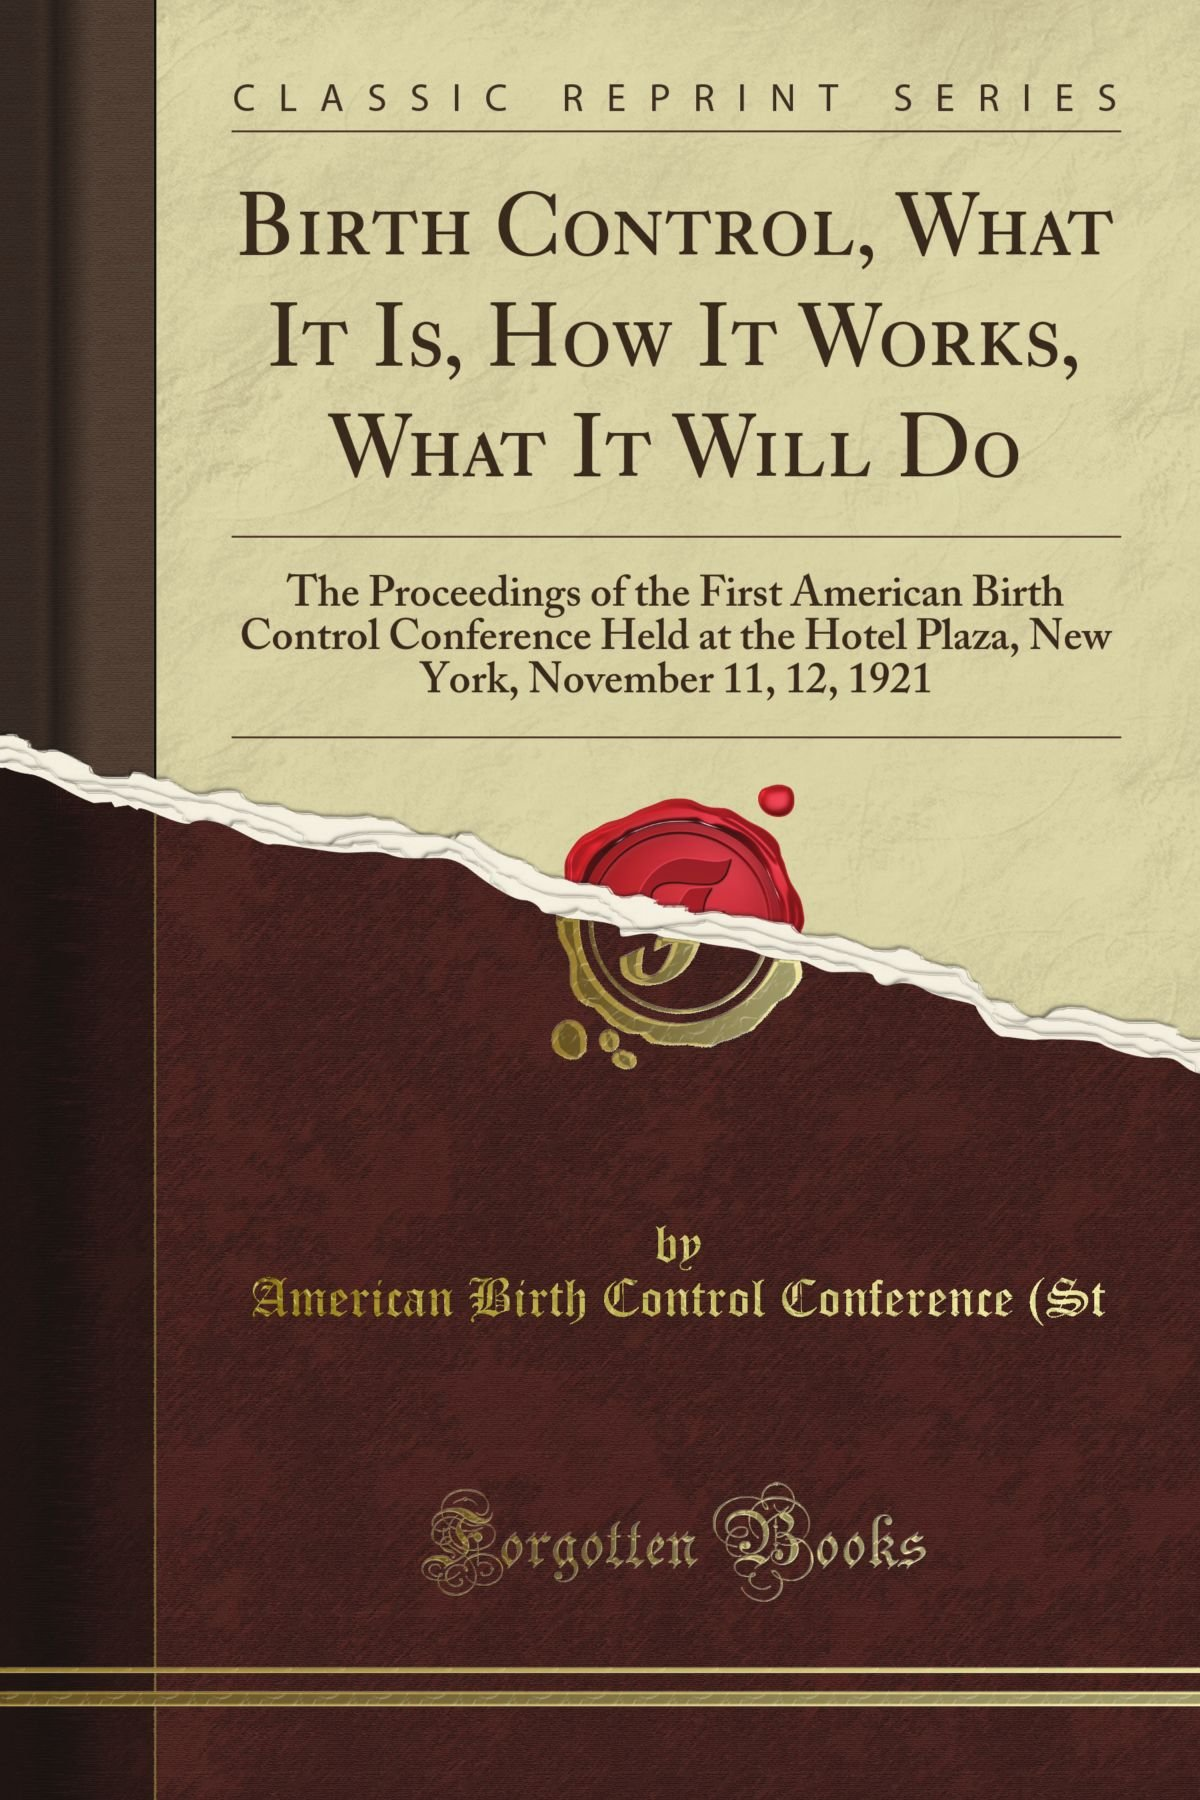 Download Birth Control, What It Is, How It Works, What It Will Do: The Proceedings of the First American Birth Control Conference Held at the Hotel Plaza, New York, November 11, 12, 1921 (Classic Reprint) ebook